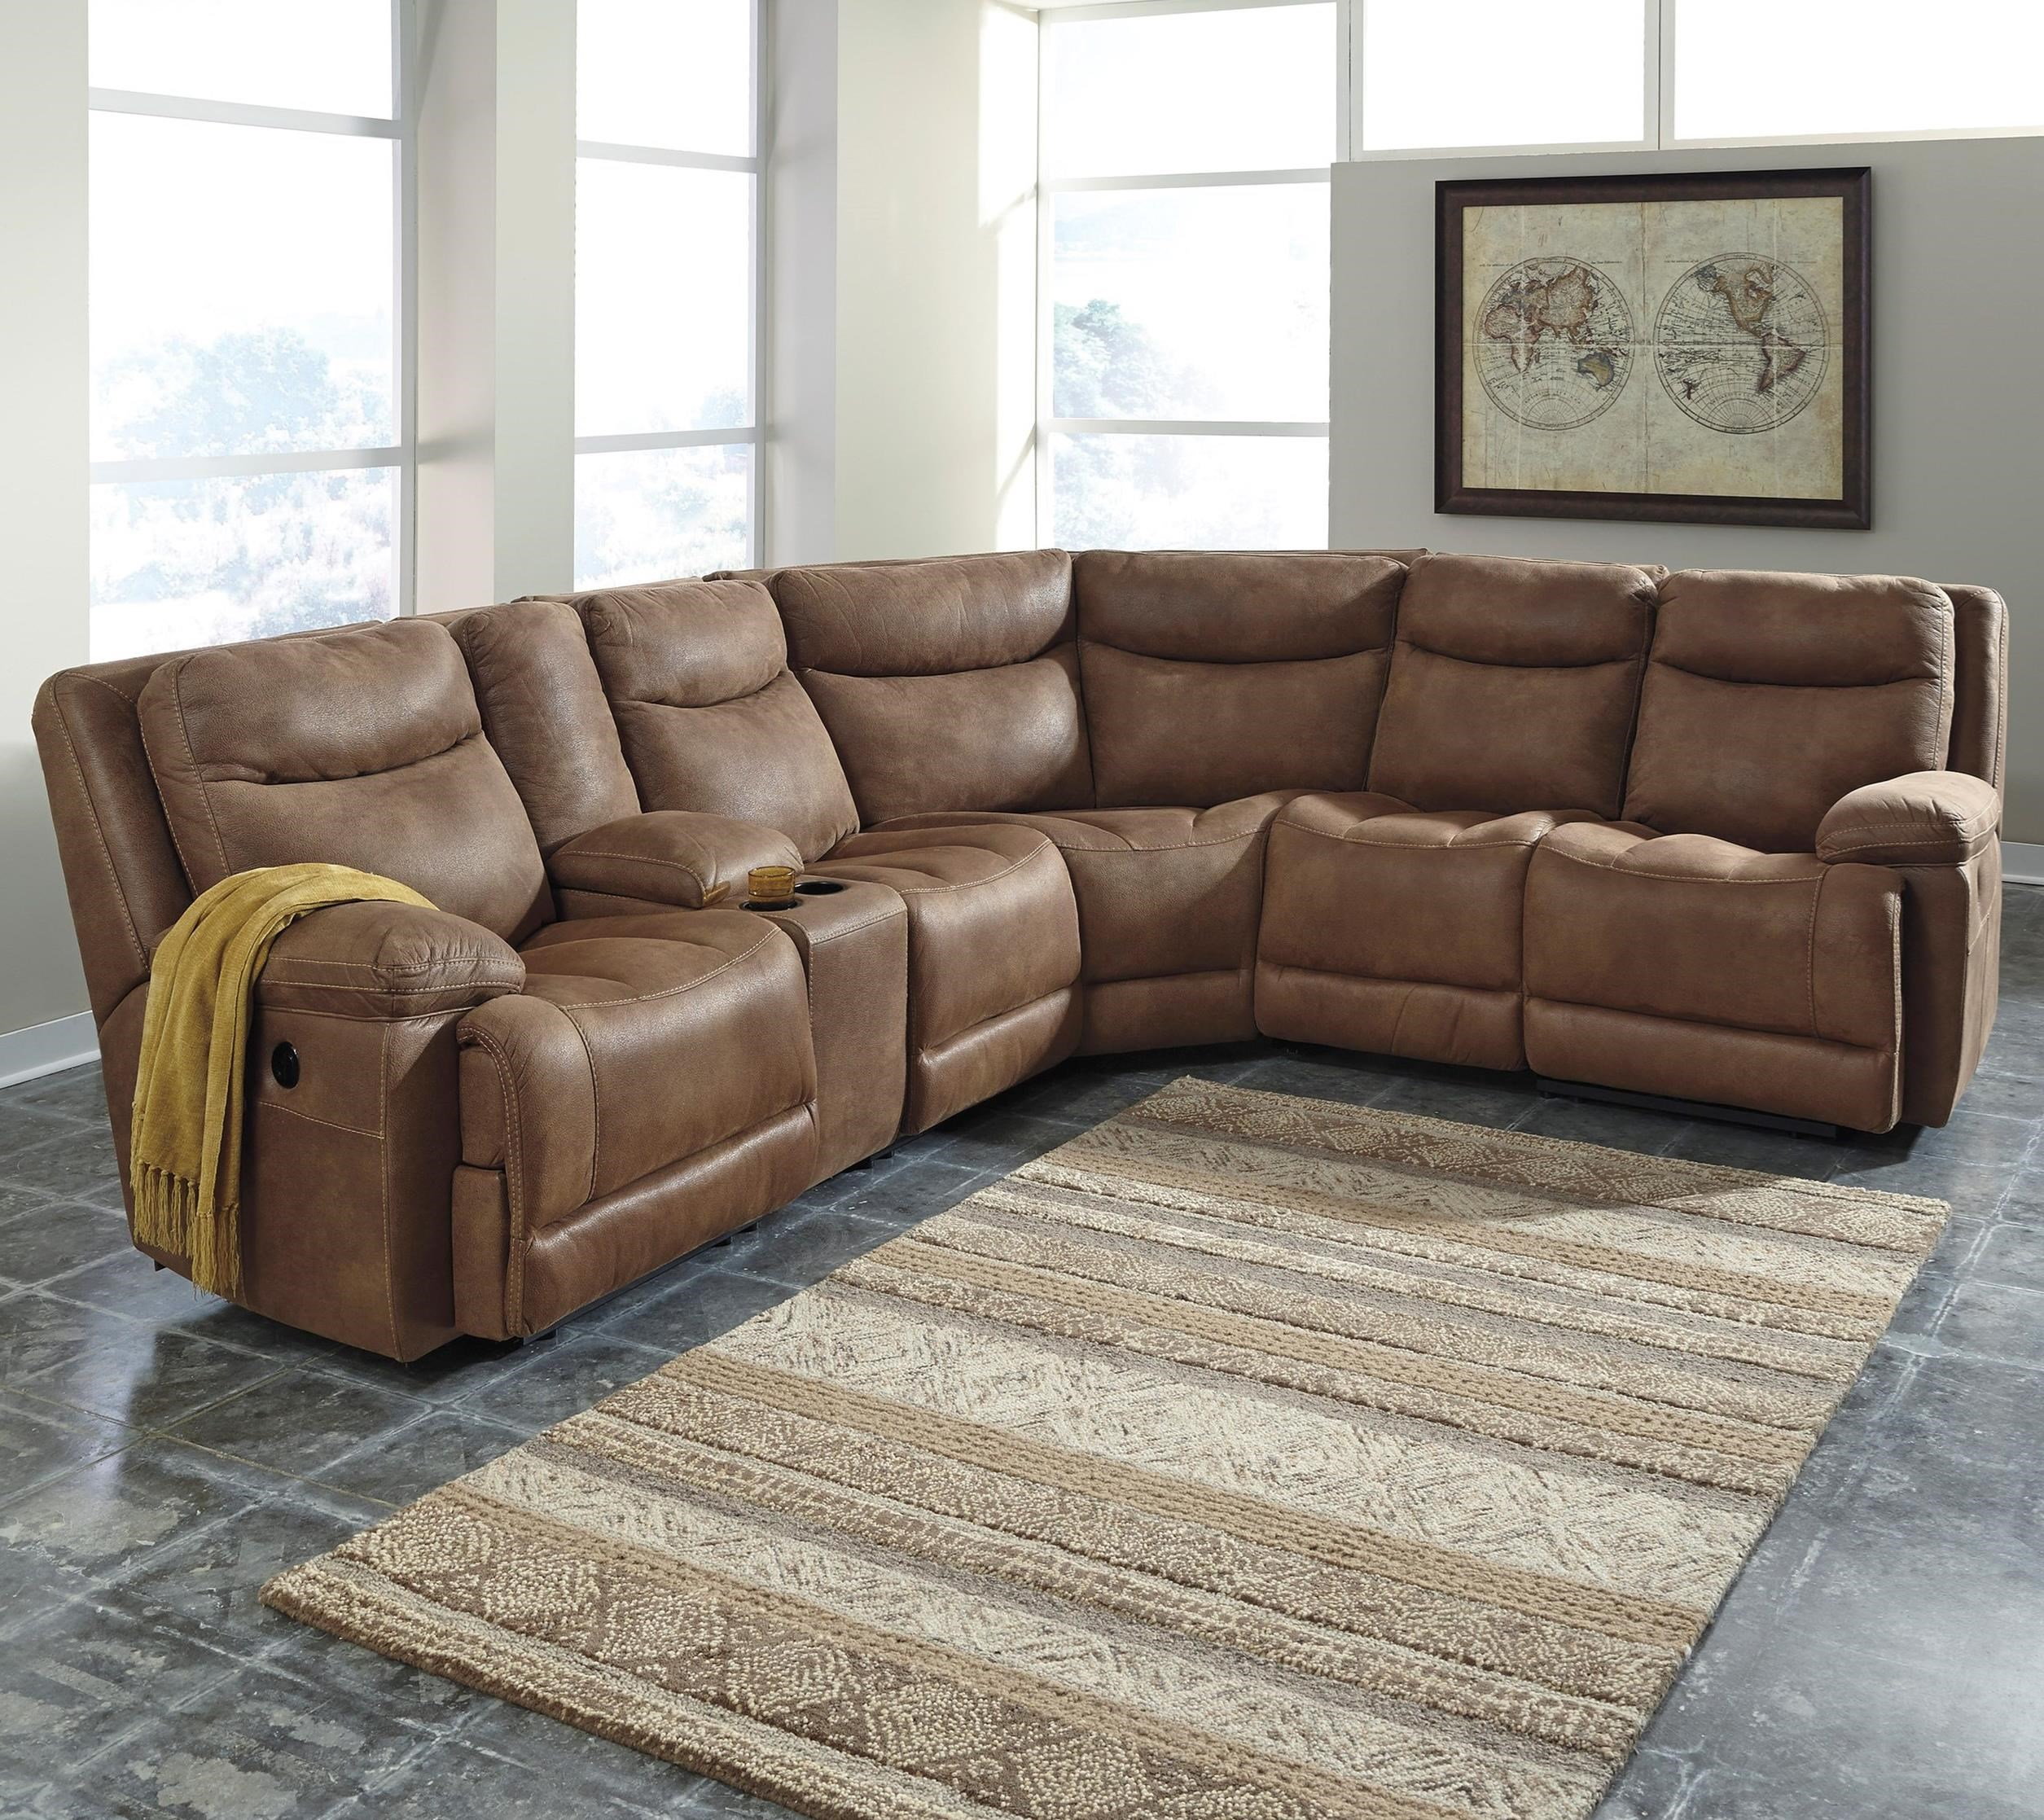 Signature Design by Ashley Valto Power Reclining Sectional with